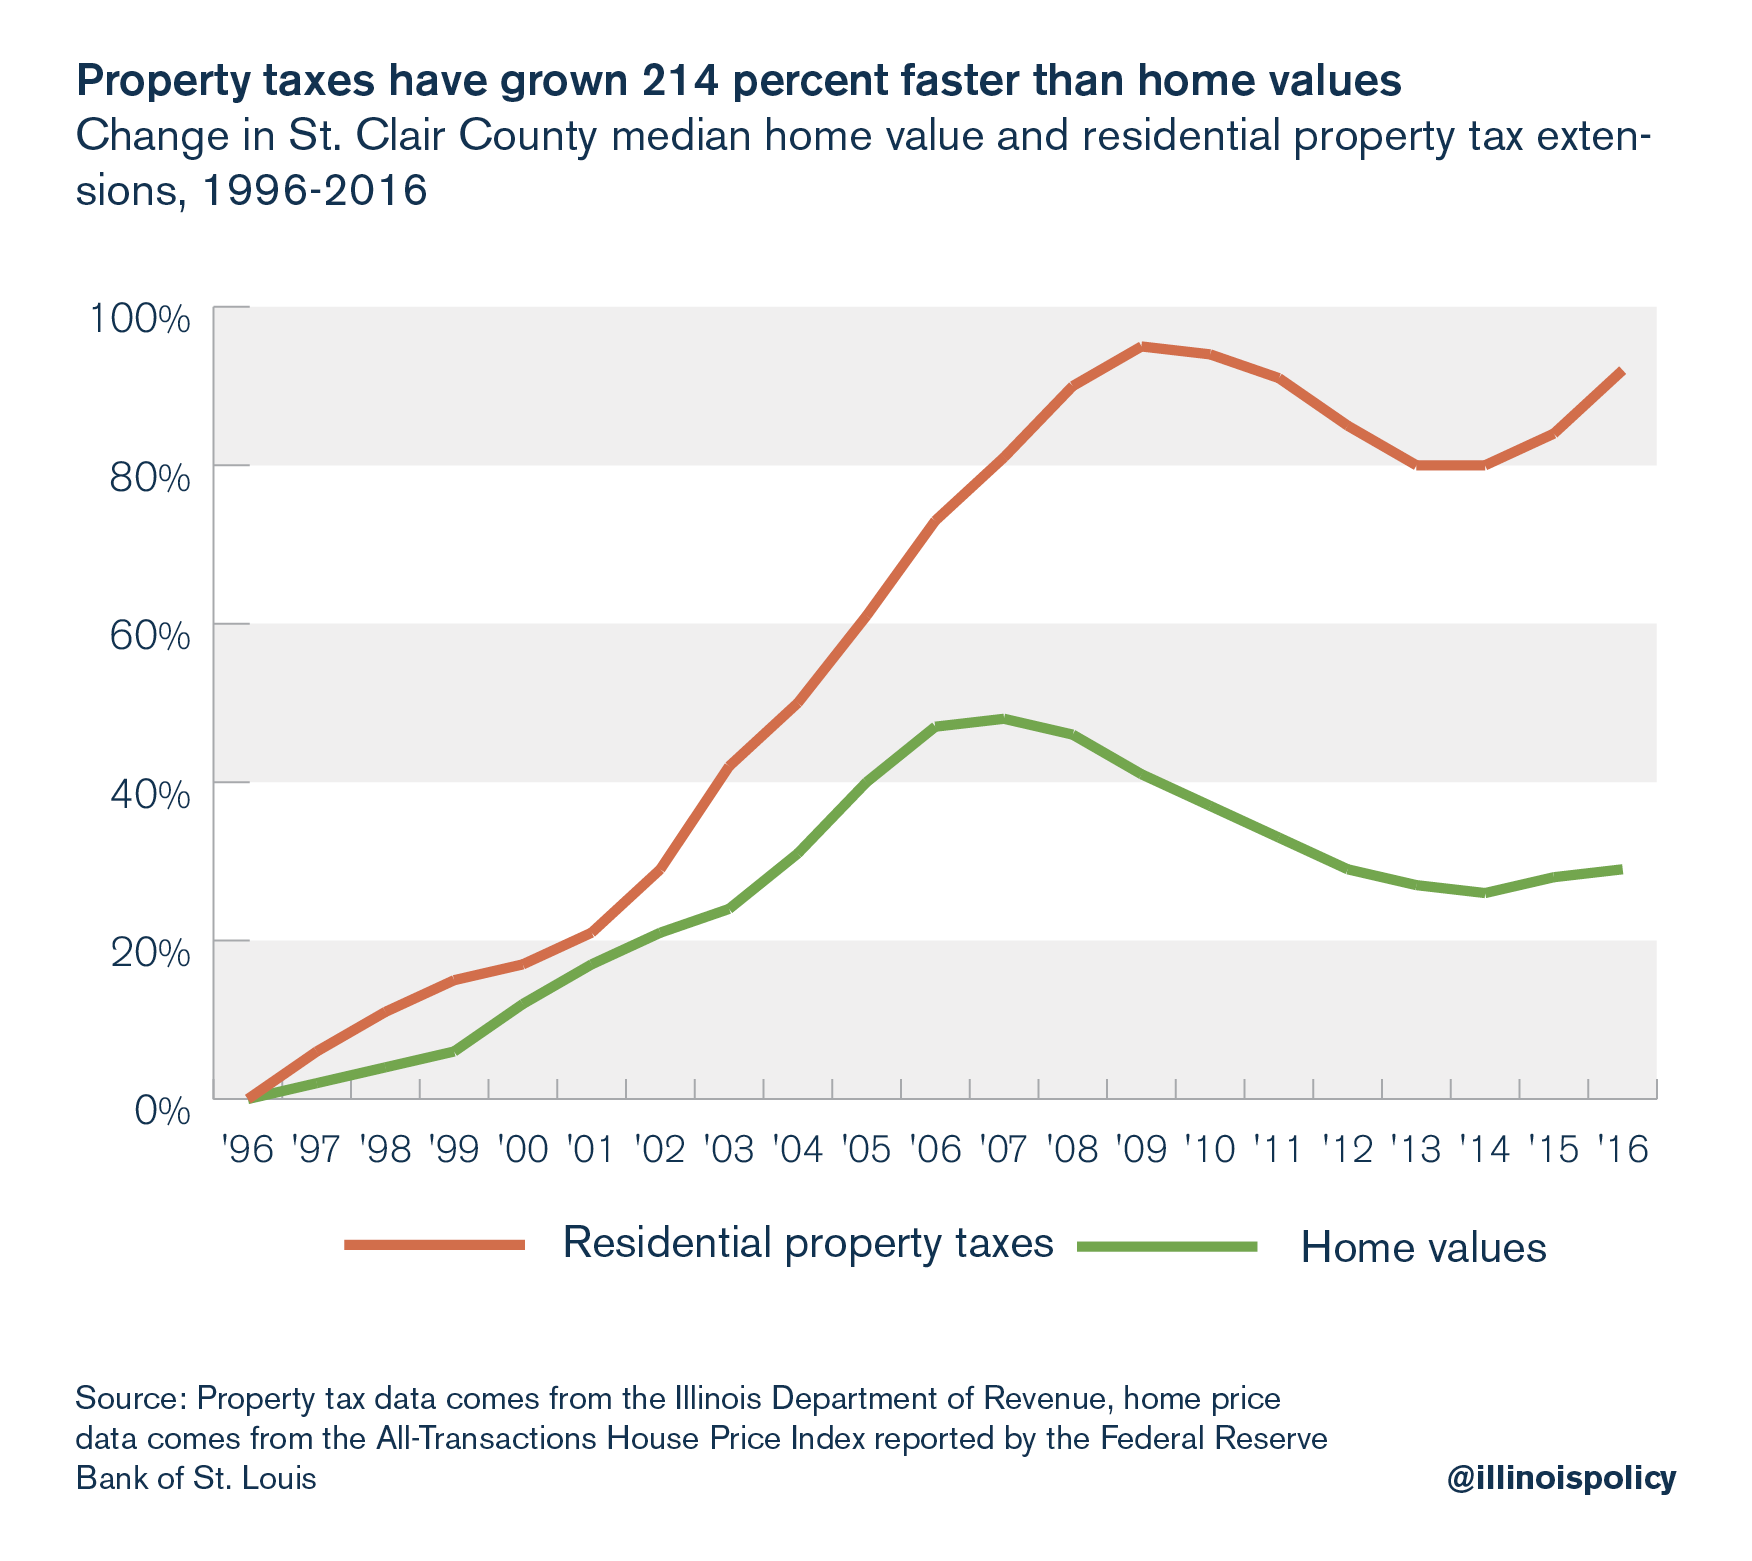 Property taxes have grown 214 percent faster than home values